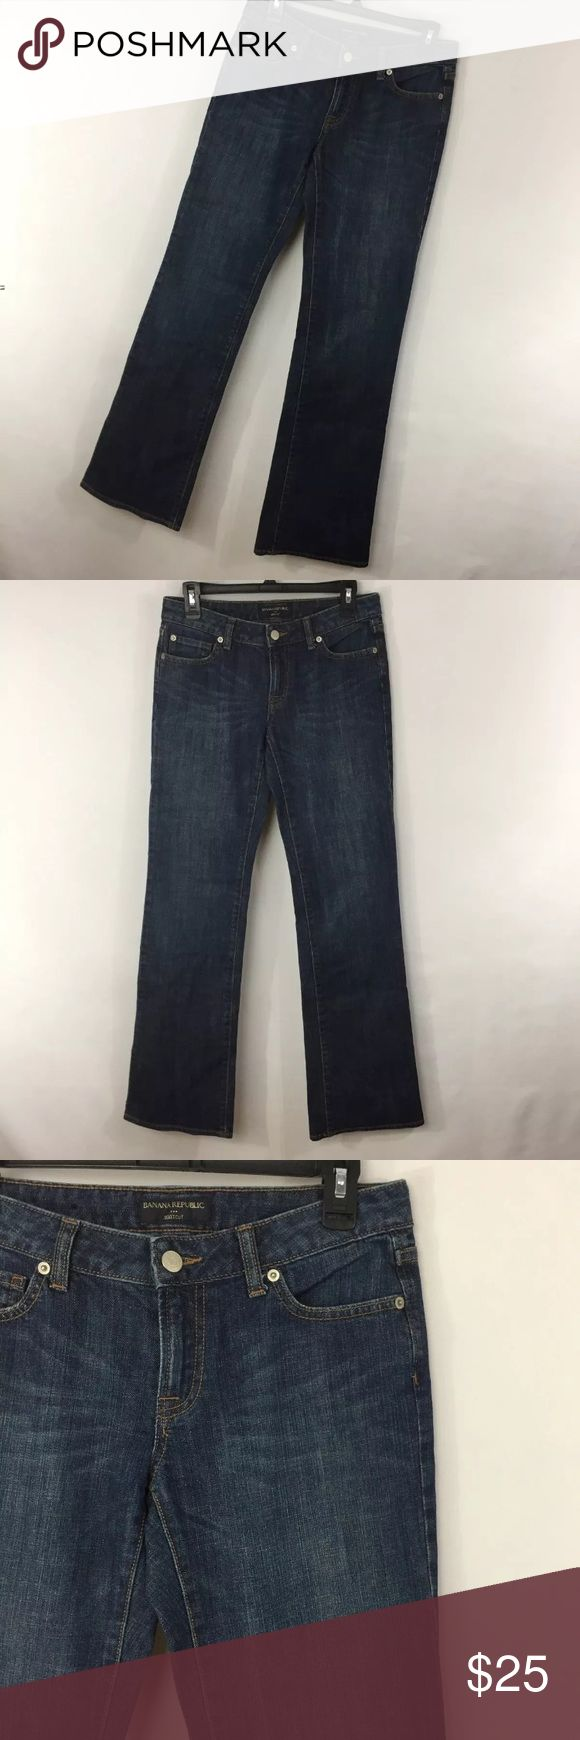 """Banana Republic 4L 4 Long Tall Jeans Dark Blue Banana Republic 4L 4 Long Tall Jeans Dark Blue Wash Bootcut Boot Cut Womens. Excellent condition. Smoke free home. Actual Waist Measurement - 30"""" Hips Measurement - 36"""" Rise measurement - 8"""" Inseam measurement - 35"""" Banana Republic Jeans Boot Cut"""